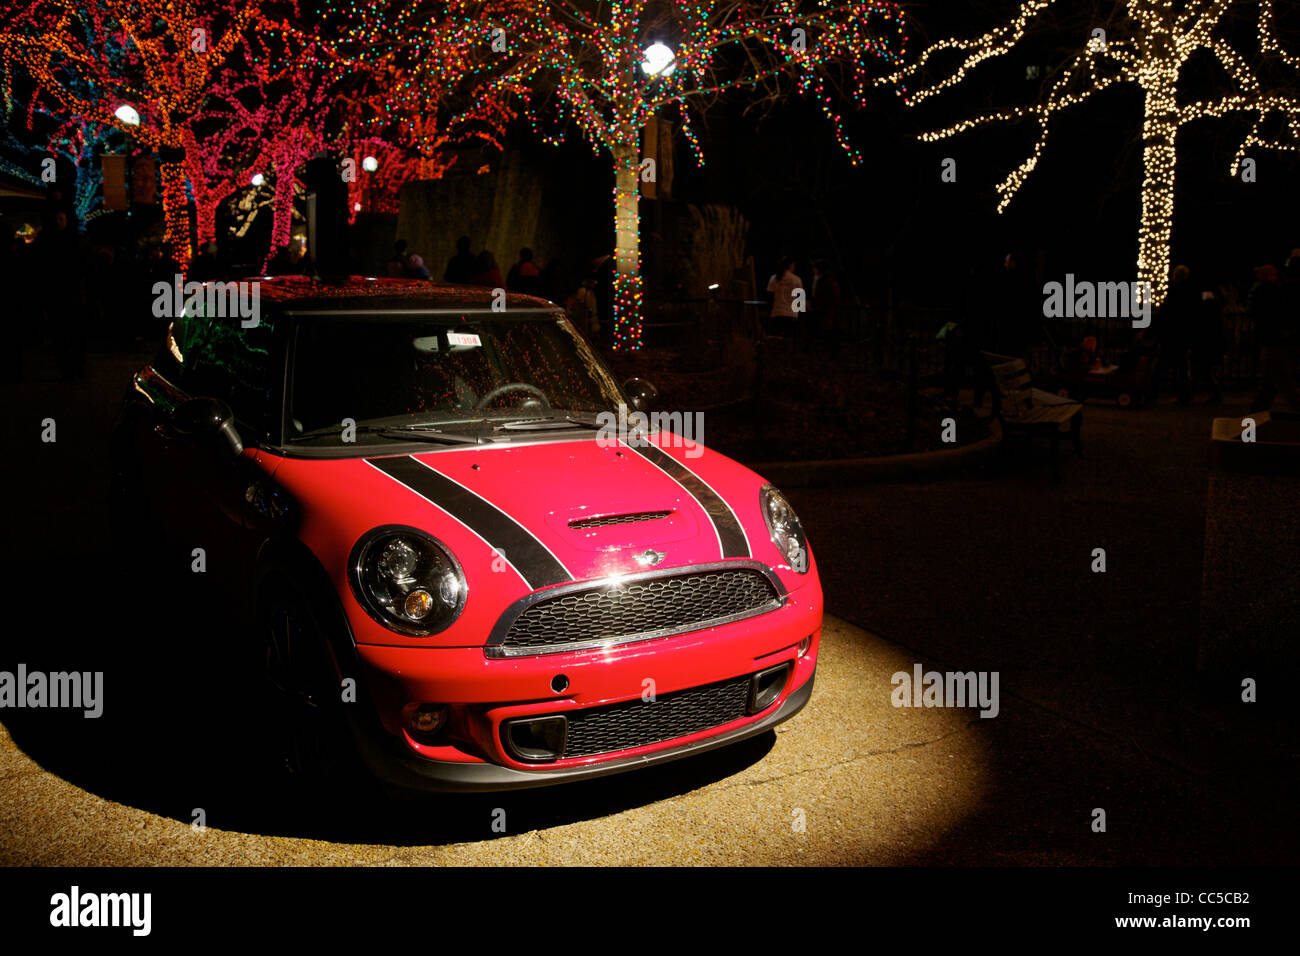 Mini Cooper S On Display Lincoln Park Christmas Zoo Lights Festival